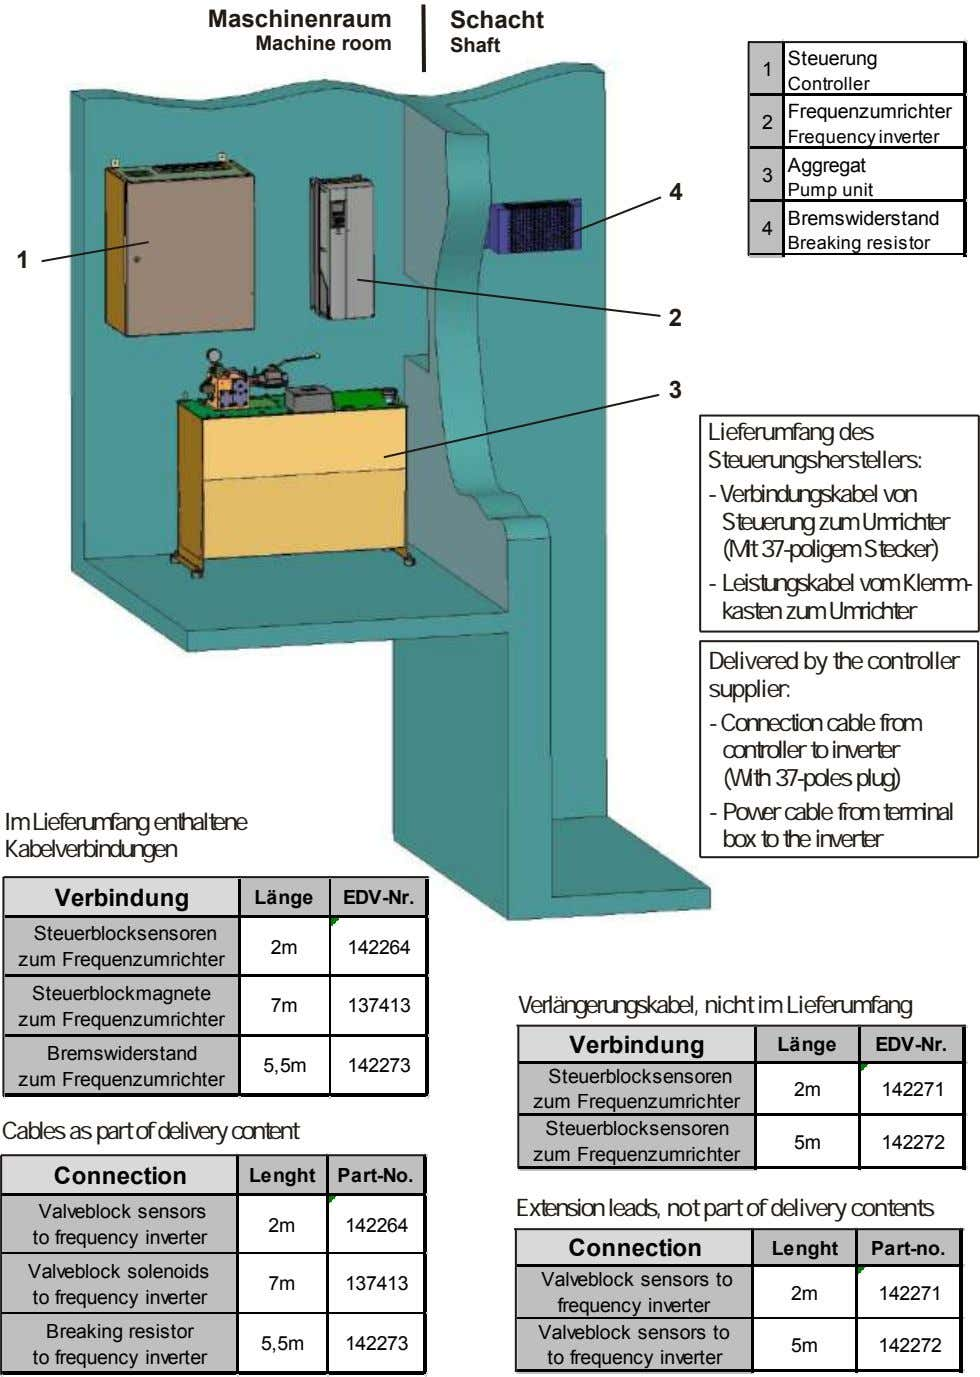 Maschinenraum Schacht Machine room Shaft Steuerung 1 Controller Frequenzumrichter 2 Frequency inverter Aggregat